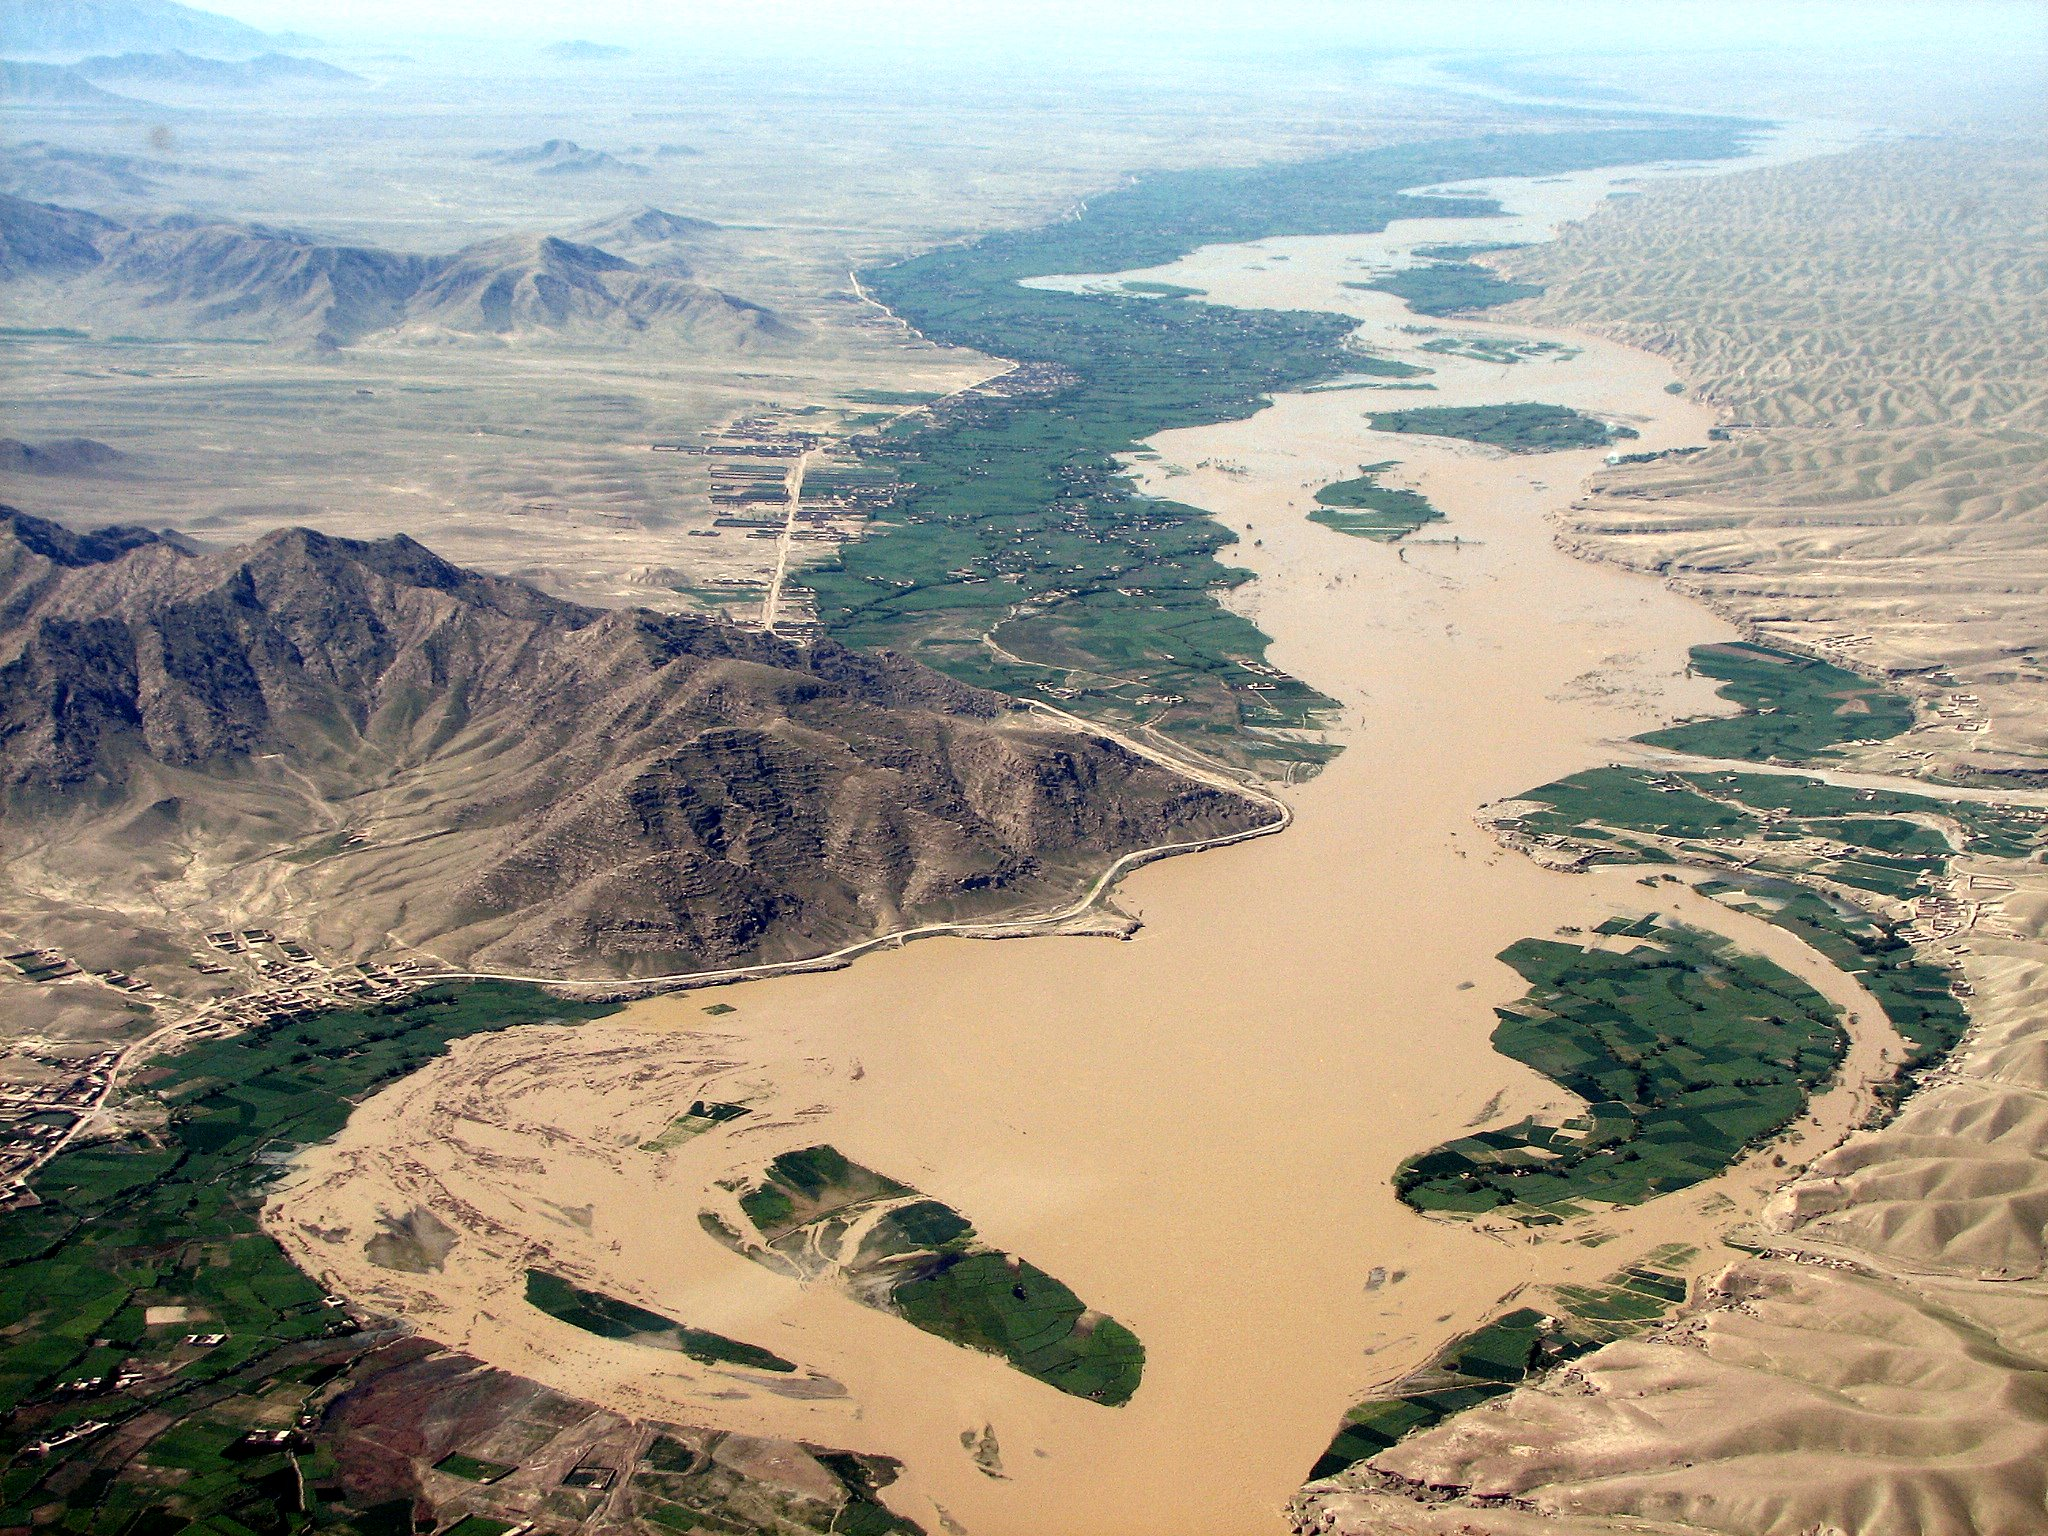 USAID responds to flooding along the Helmand River in Afghanistan, by providing critical assistance to the immediate needs of th